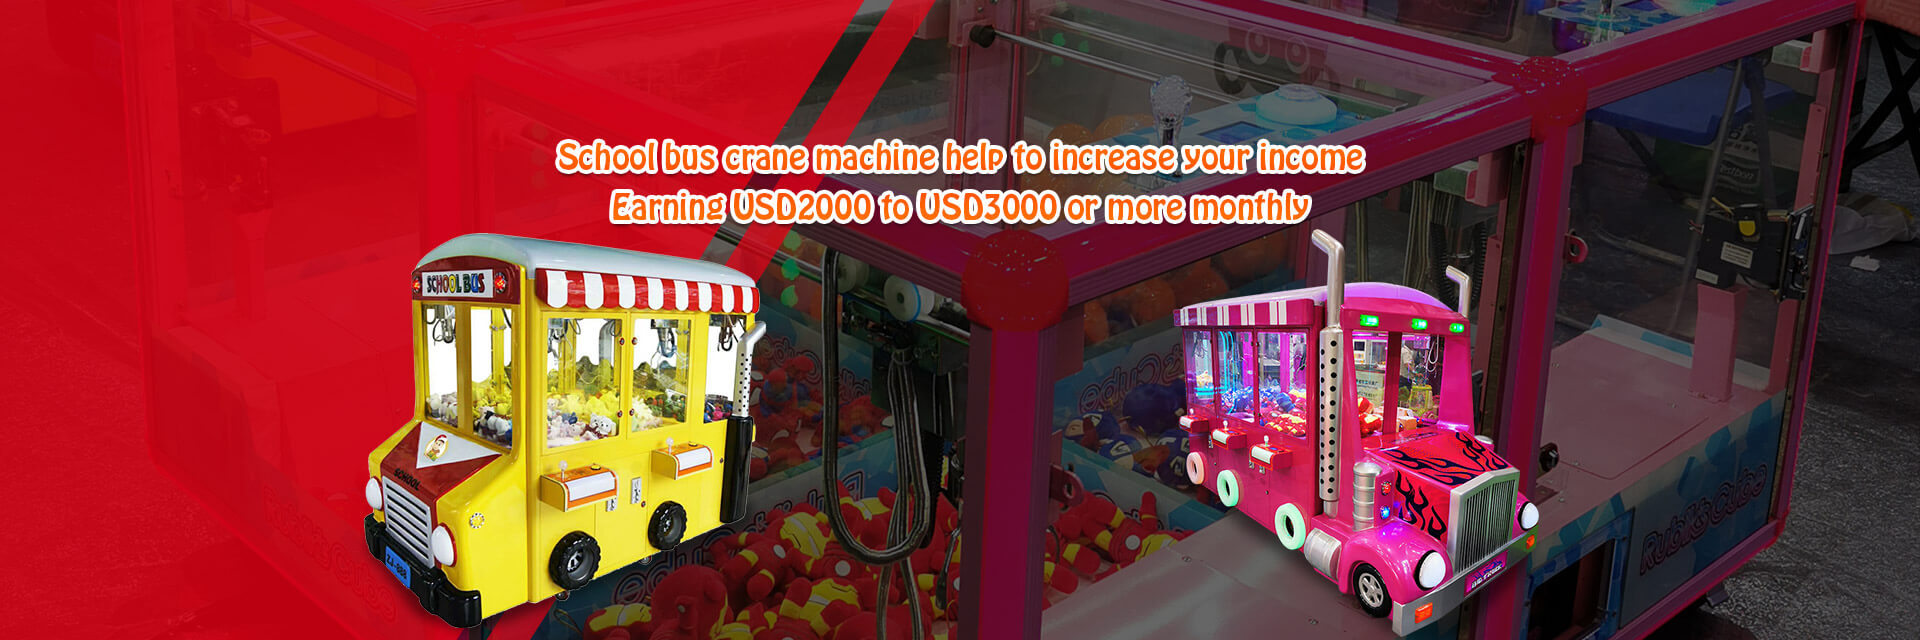 mini crane claw machine